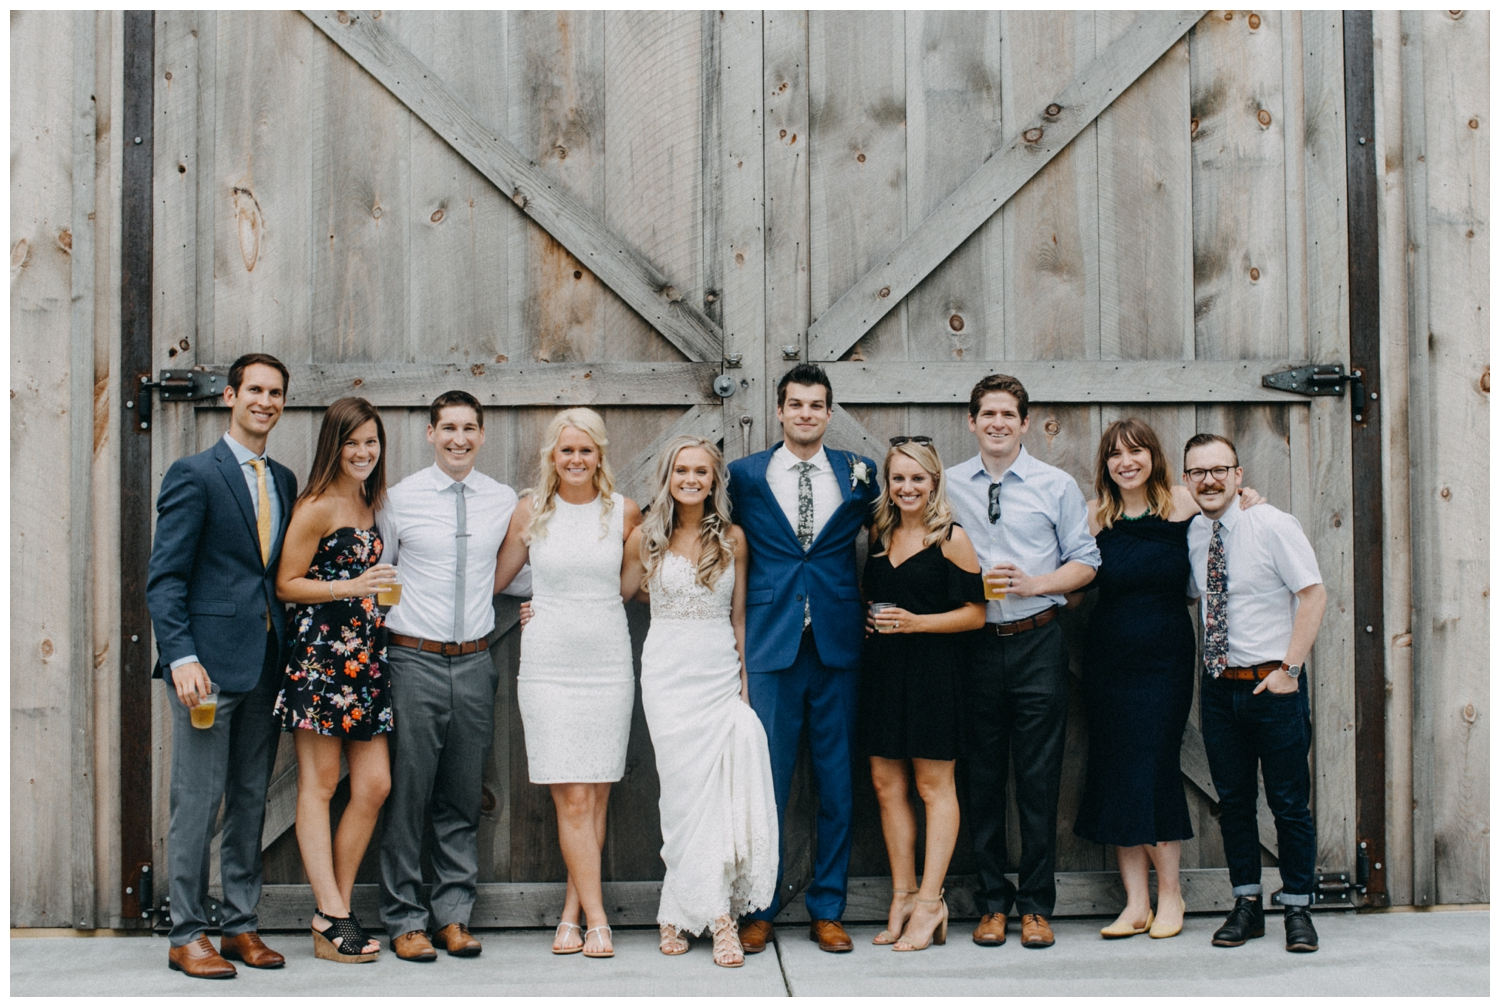 Casual group photos at Creekside Farm wedding